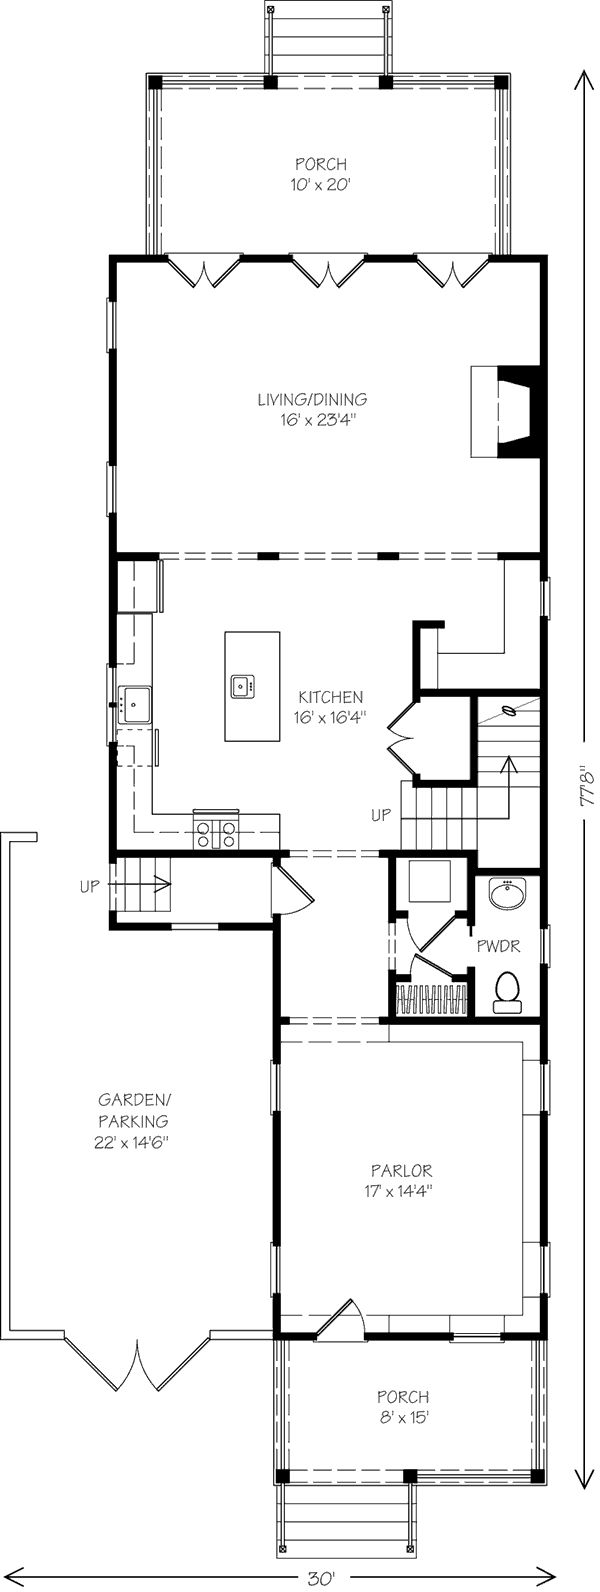 15 best floor plans images on pinterest garages house floor